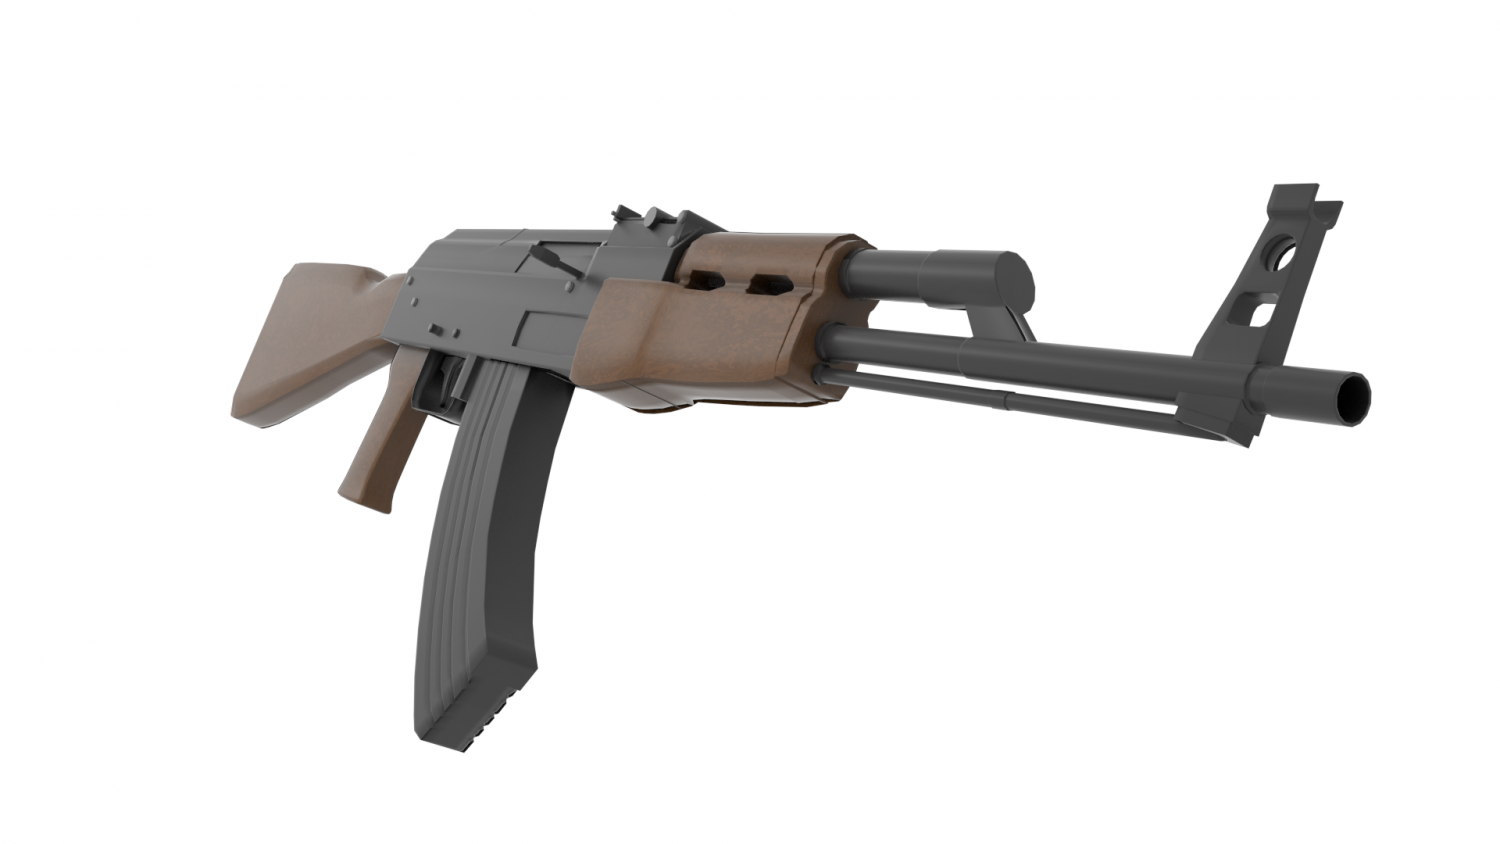 3d Model Of Ak 47 Gun – Dibujos Para Colorear